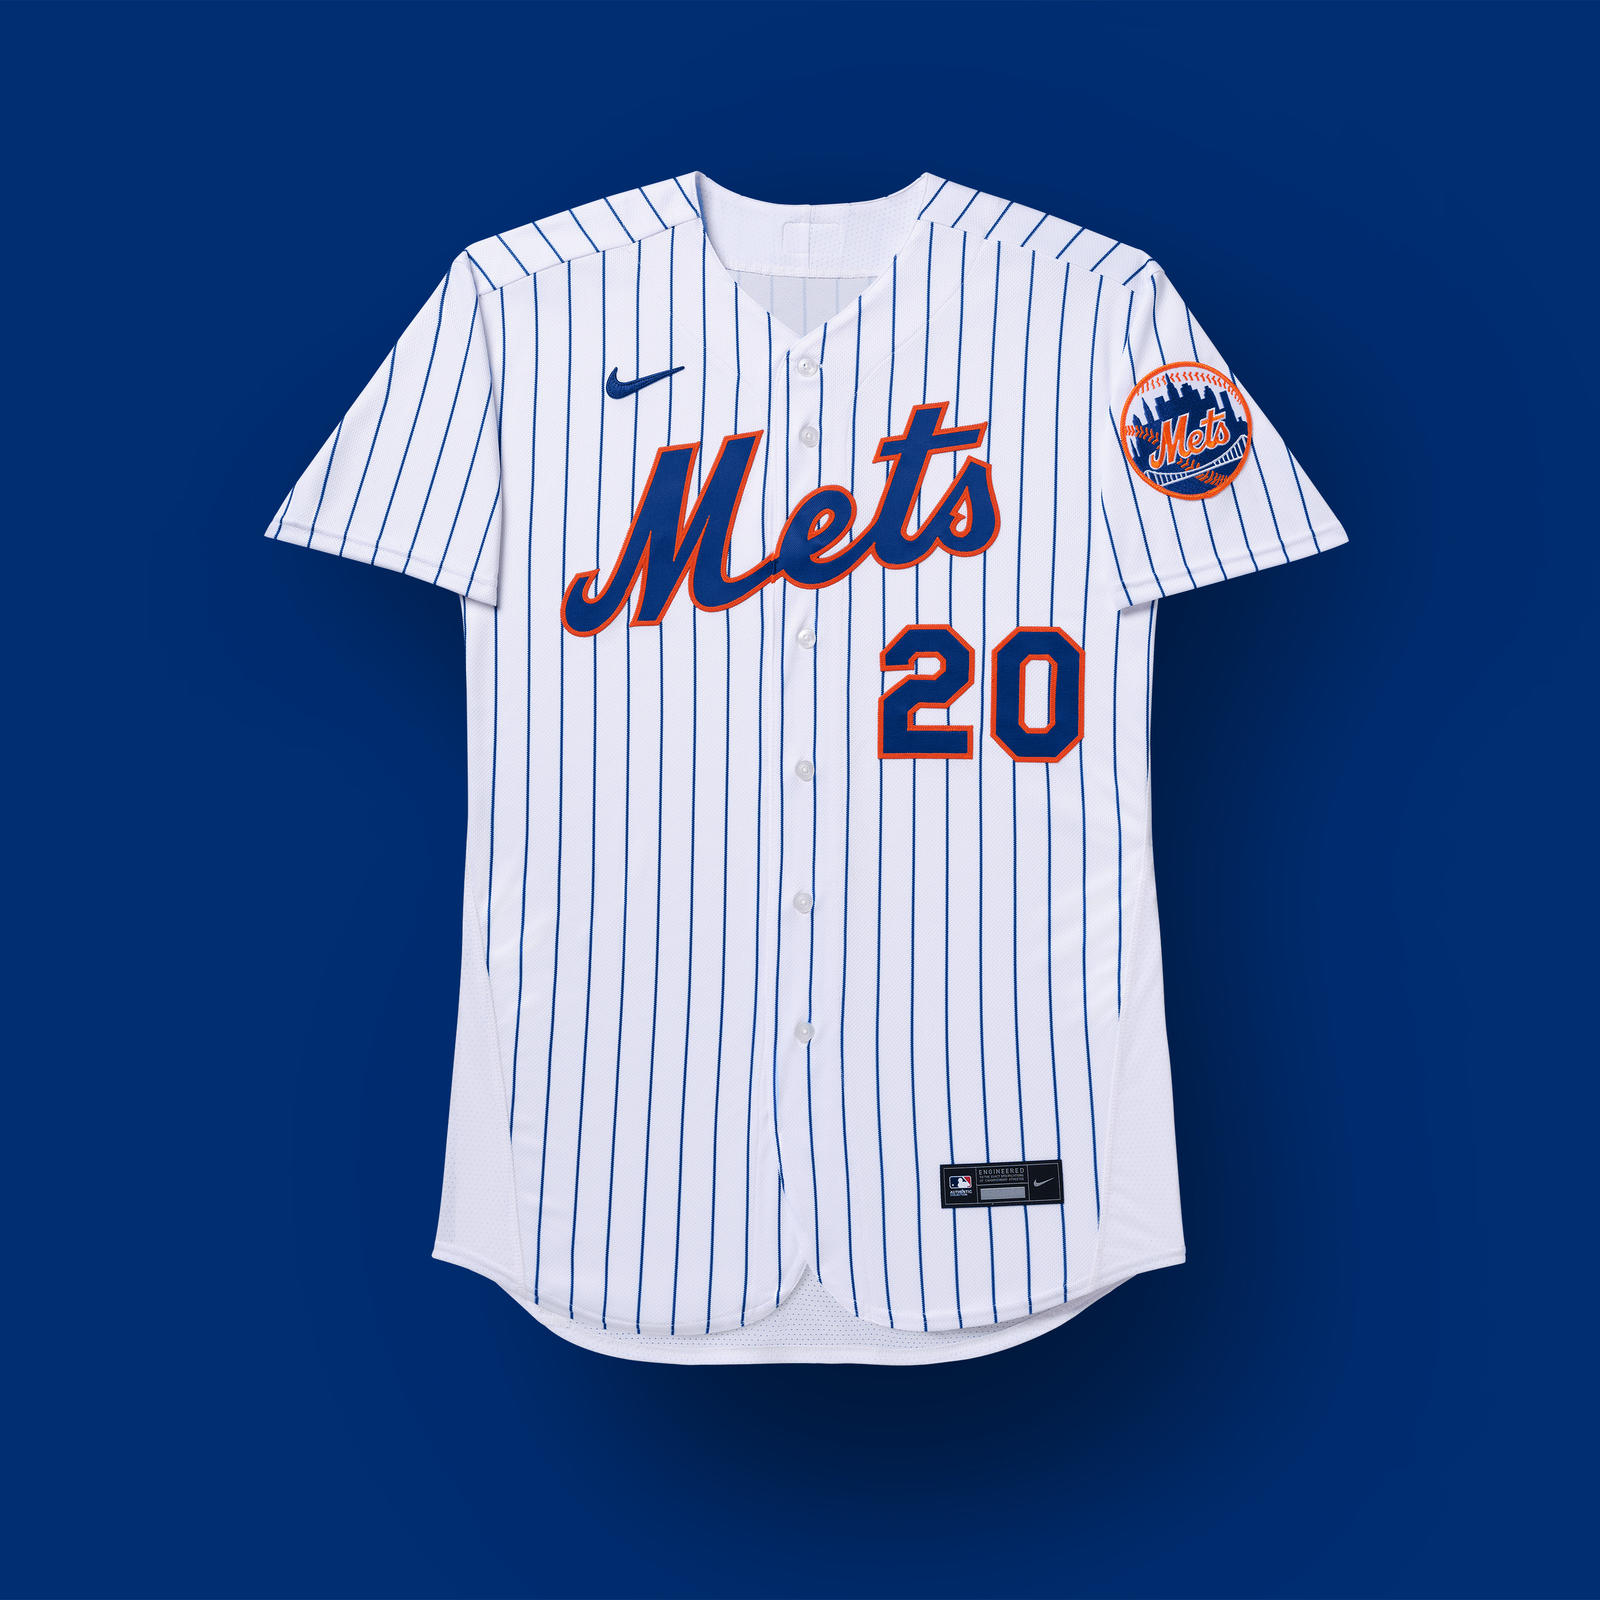 Nike x Major League Baseball Uniforms 2020 Official Images 13